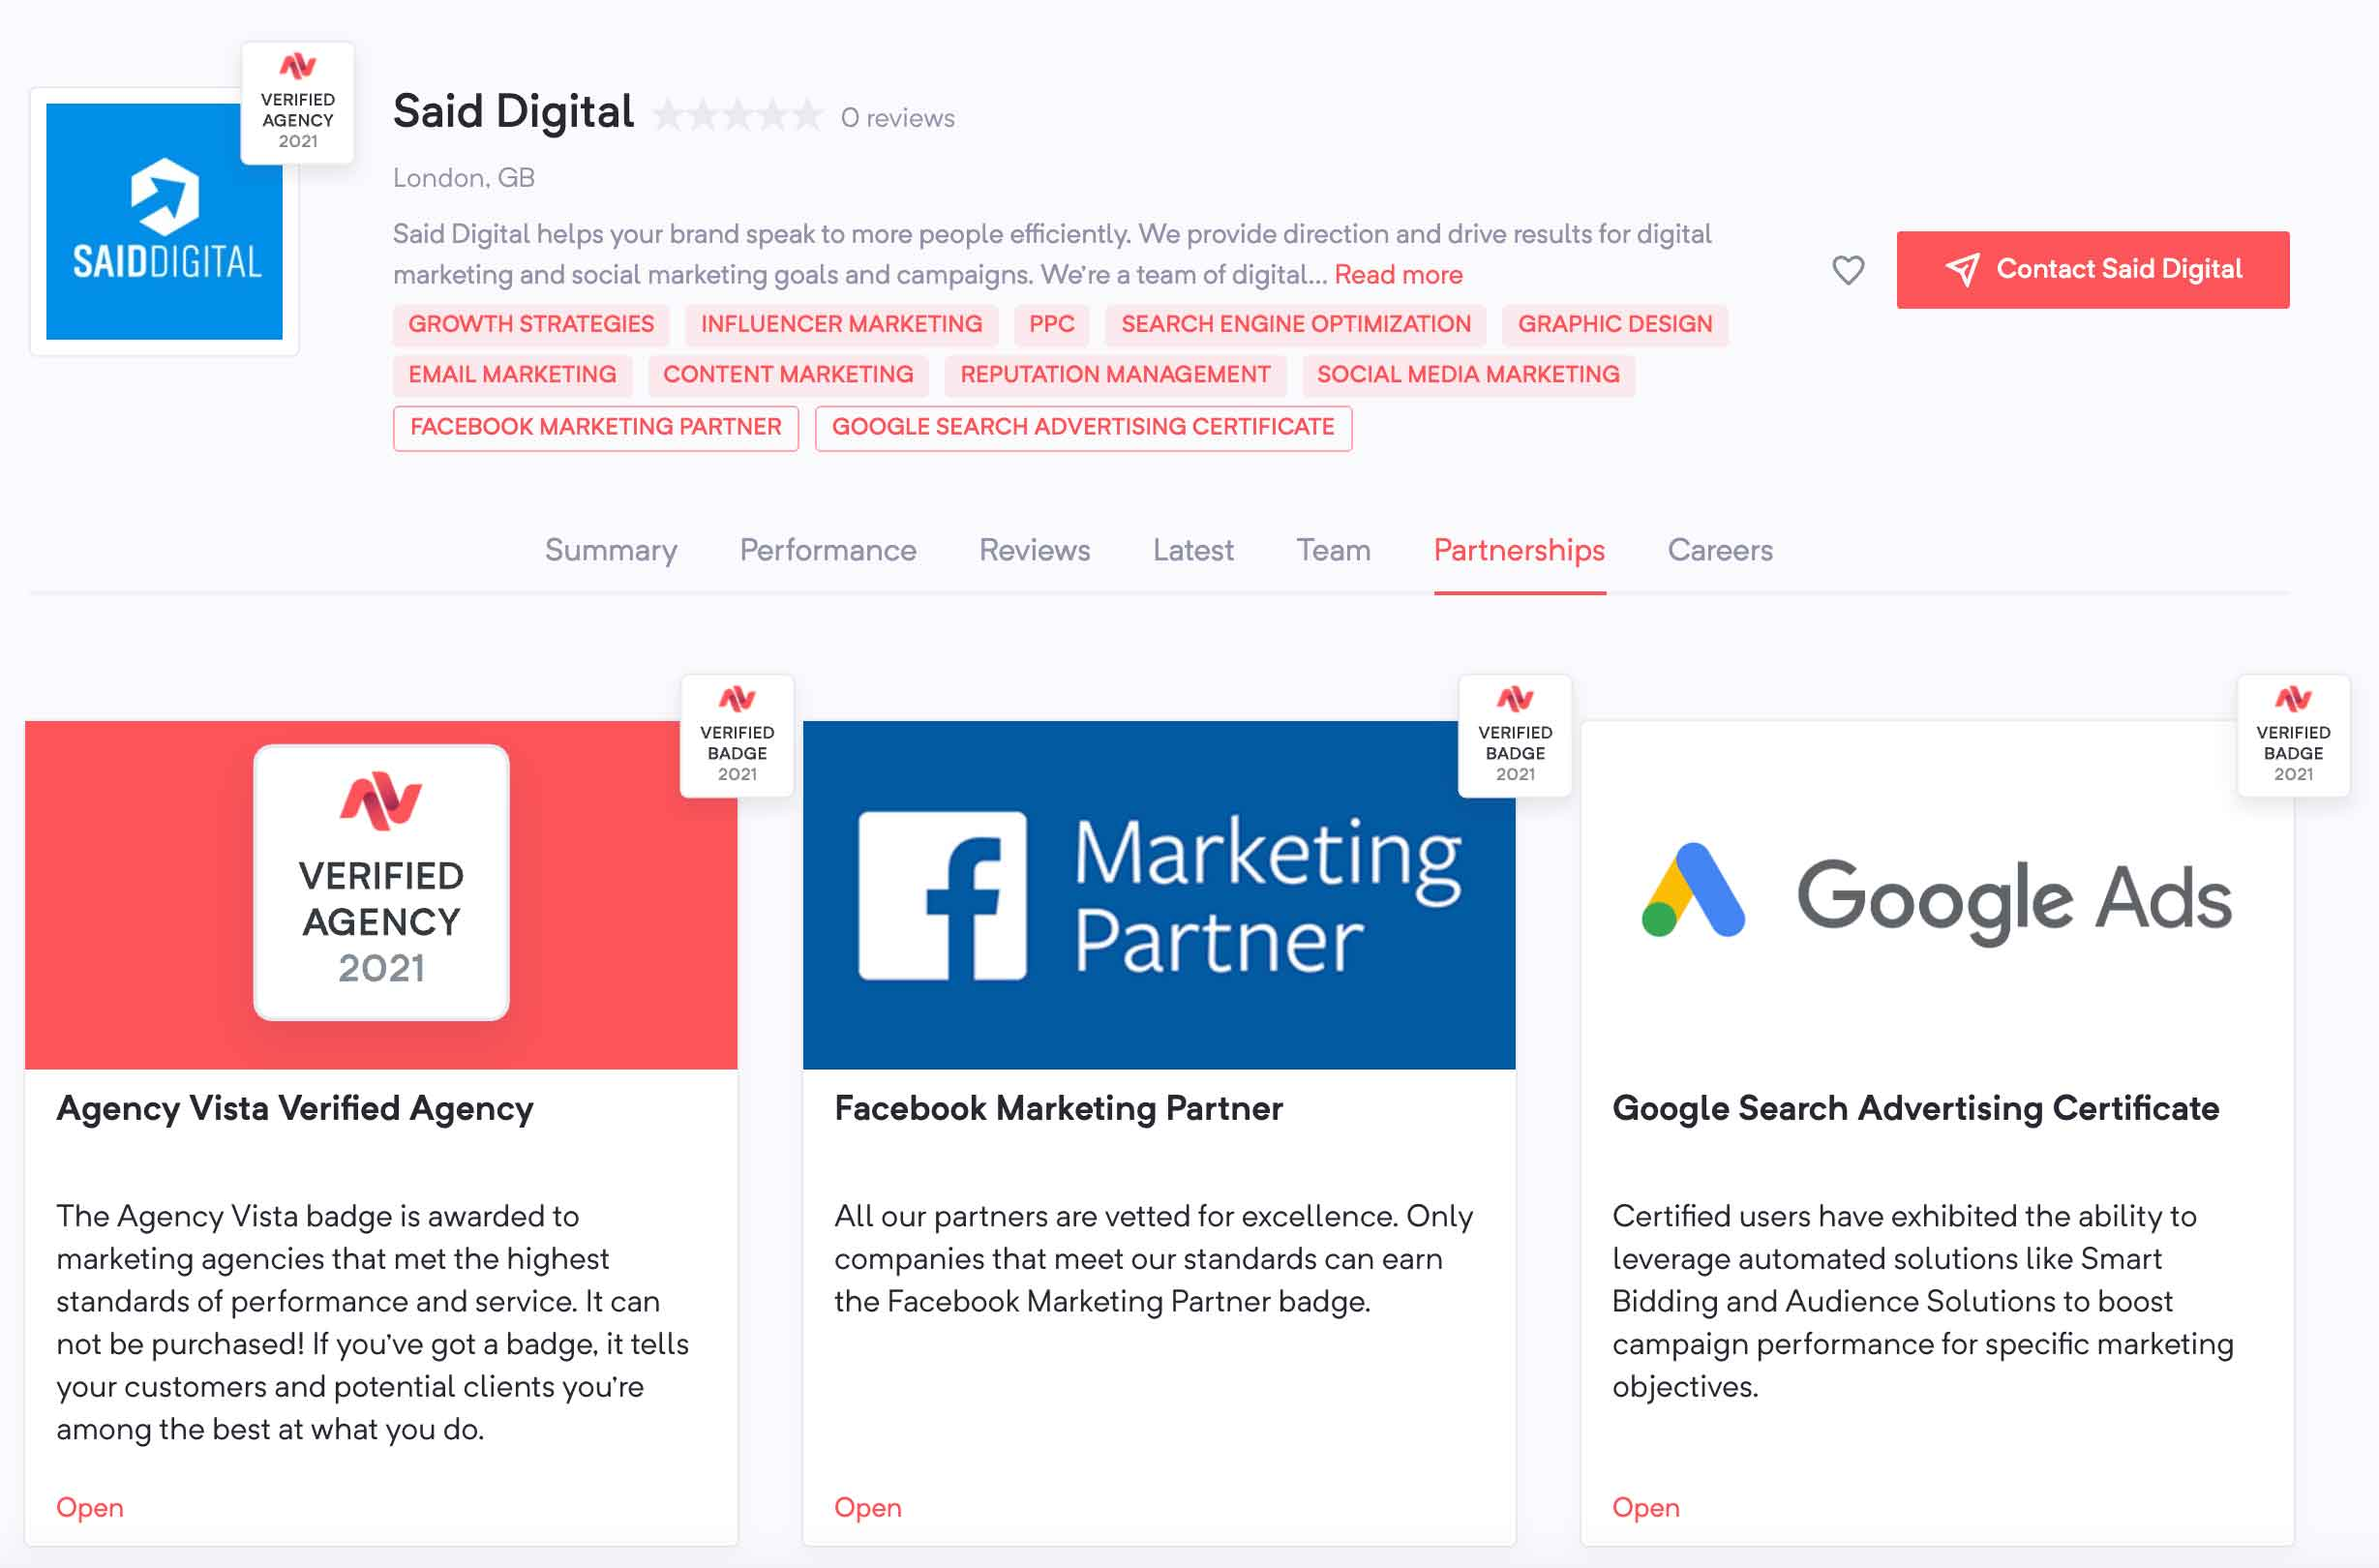 Said Digital Marketing Agency Partnerships | Agency Vista